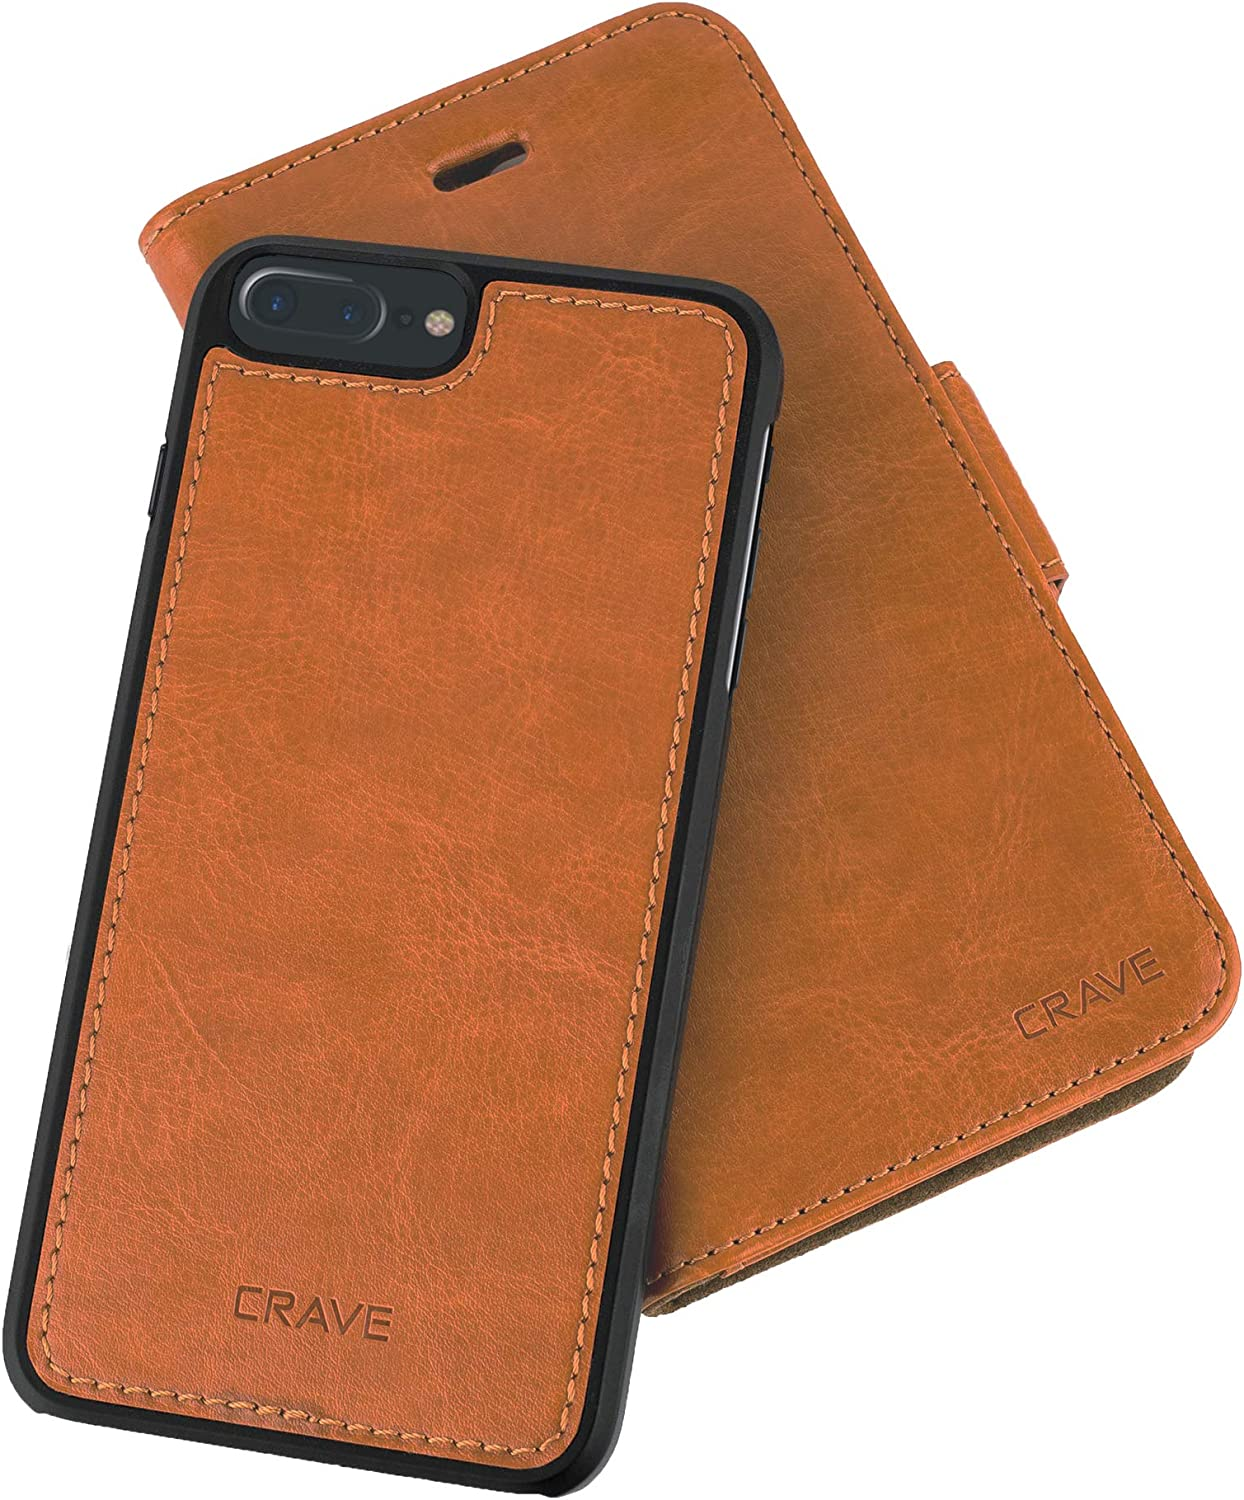 iPhone 7/8 Plus Leather Wallet Case, Crave Vegan Leather Guard Removable Case for Apple iPhone 7/8 Plus (5.5 Inch) - Brown